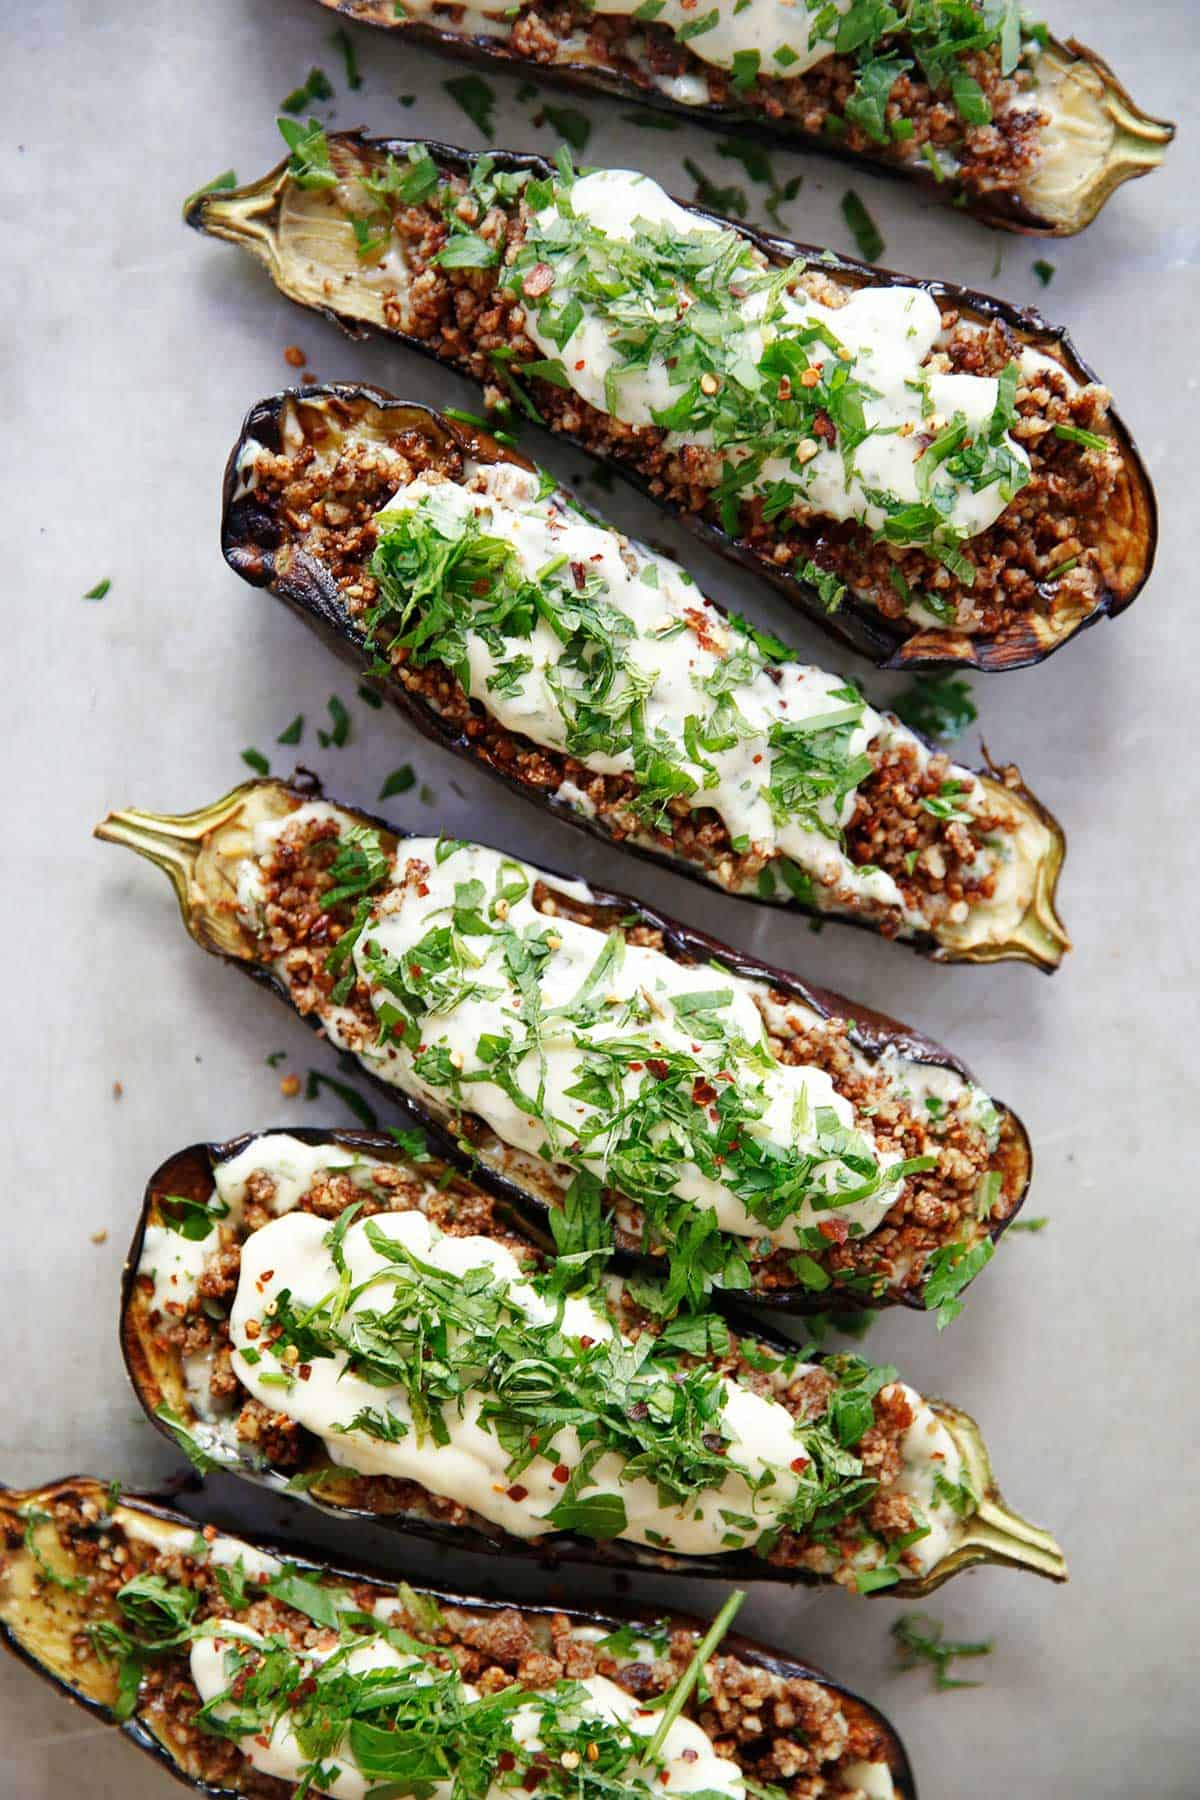 Loaded Grilled Eggplant